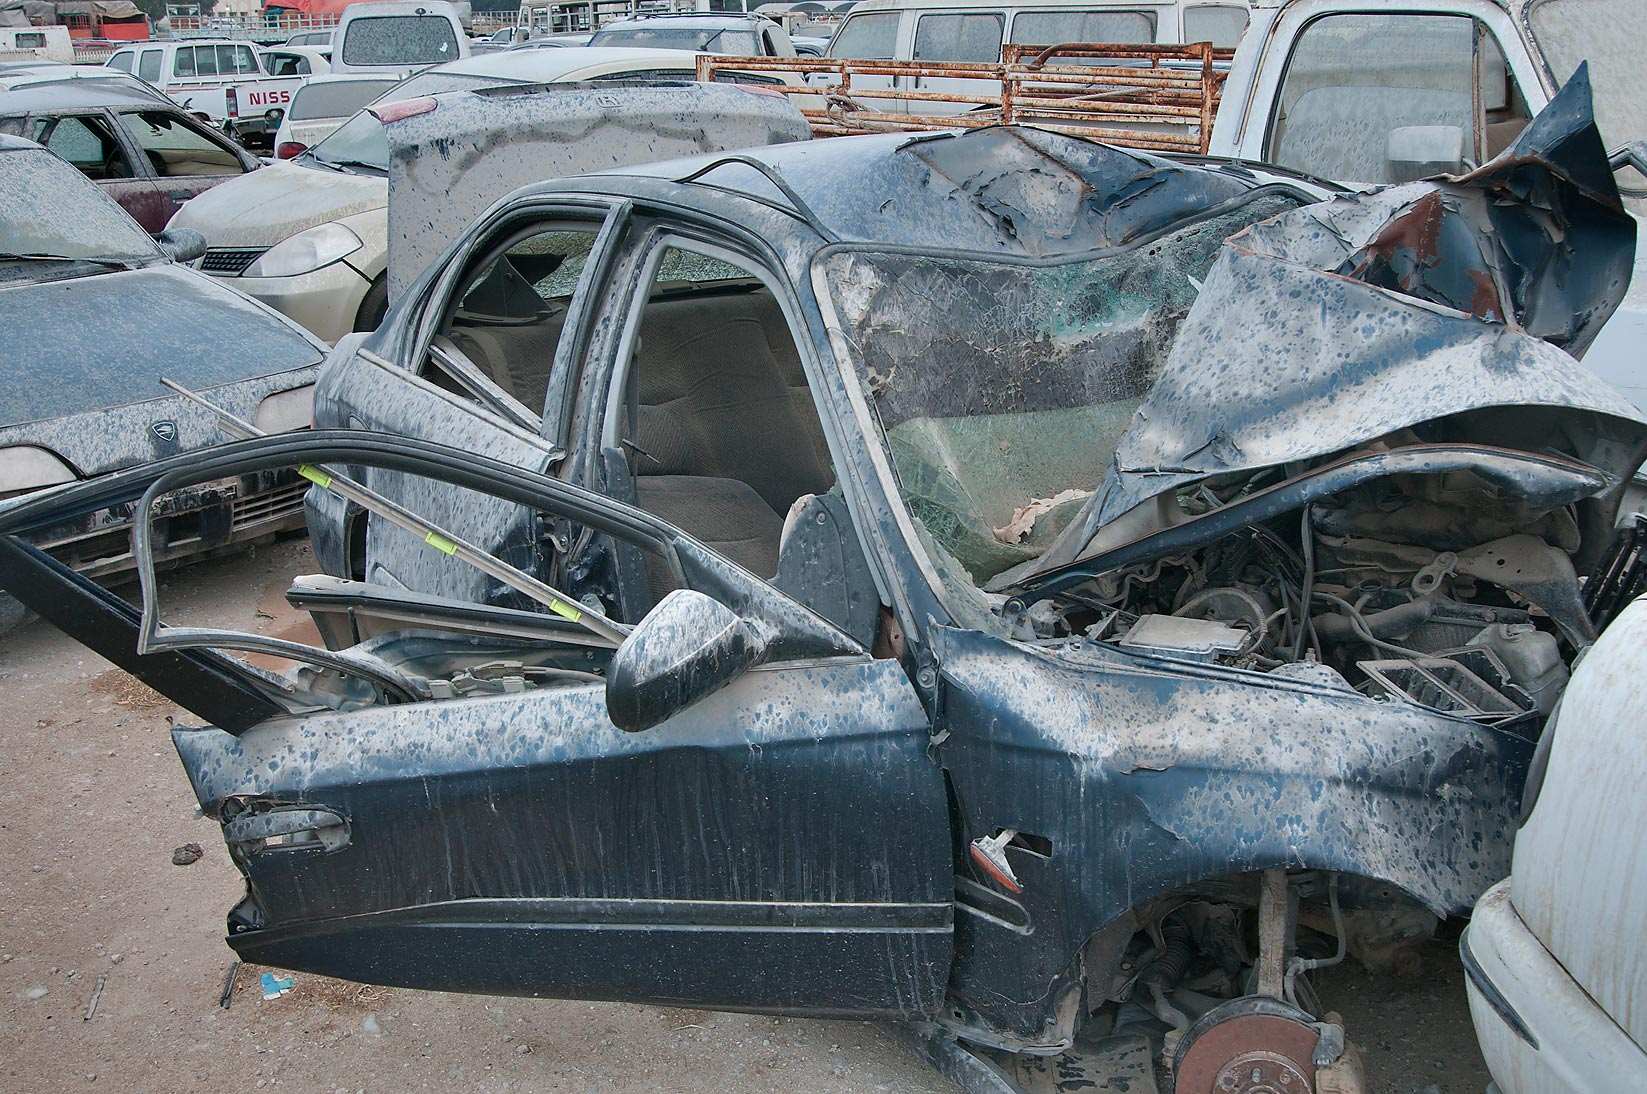 Dusty junk cars near Al Mamoura Traffic Police...in Wholesale Markets area. Doha, Qatar